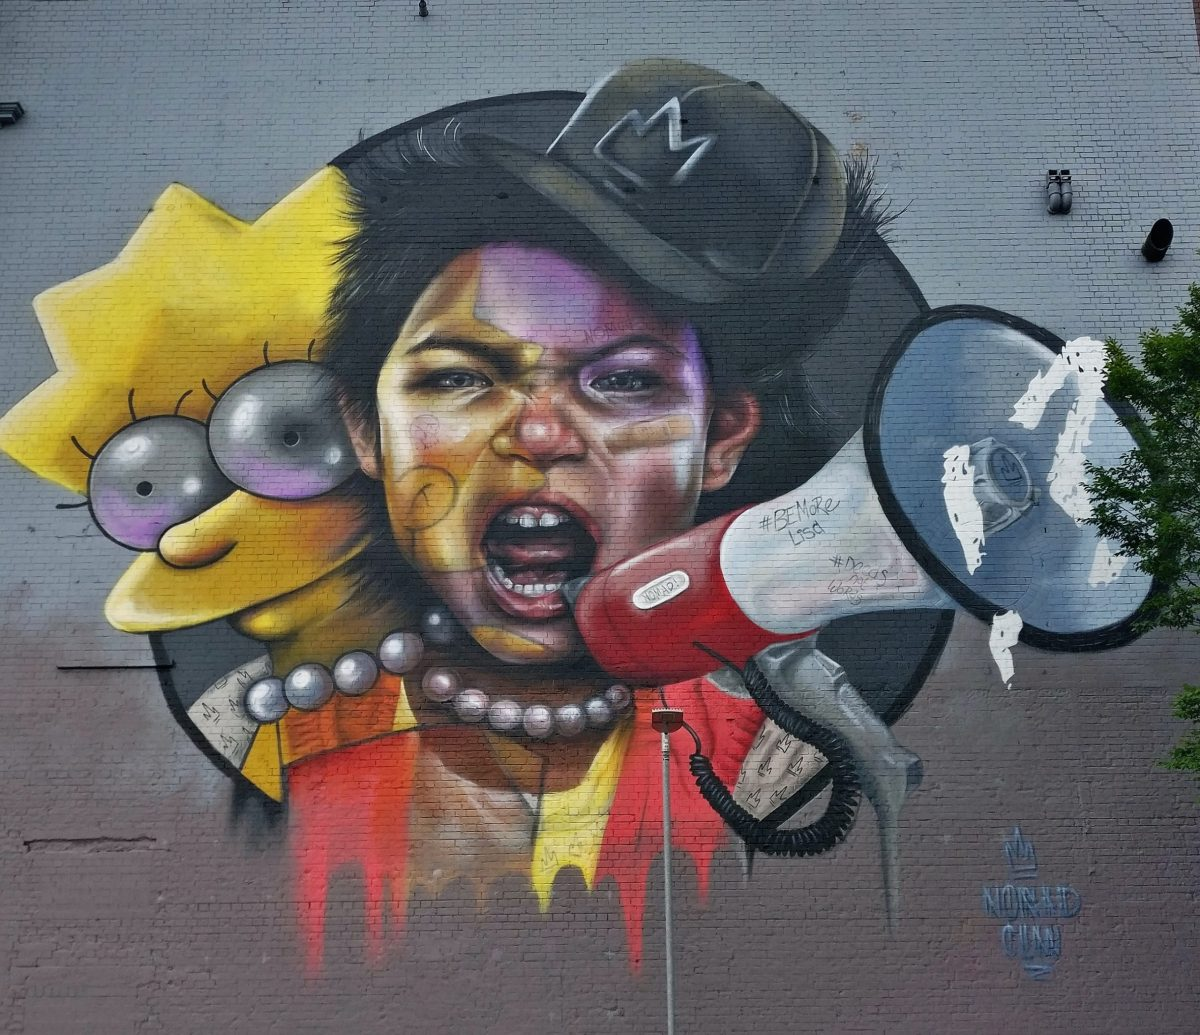 The Top 25 Murals from the 2018 Upfest Street Art Festival in Bristol